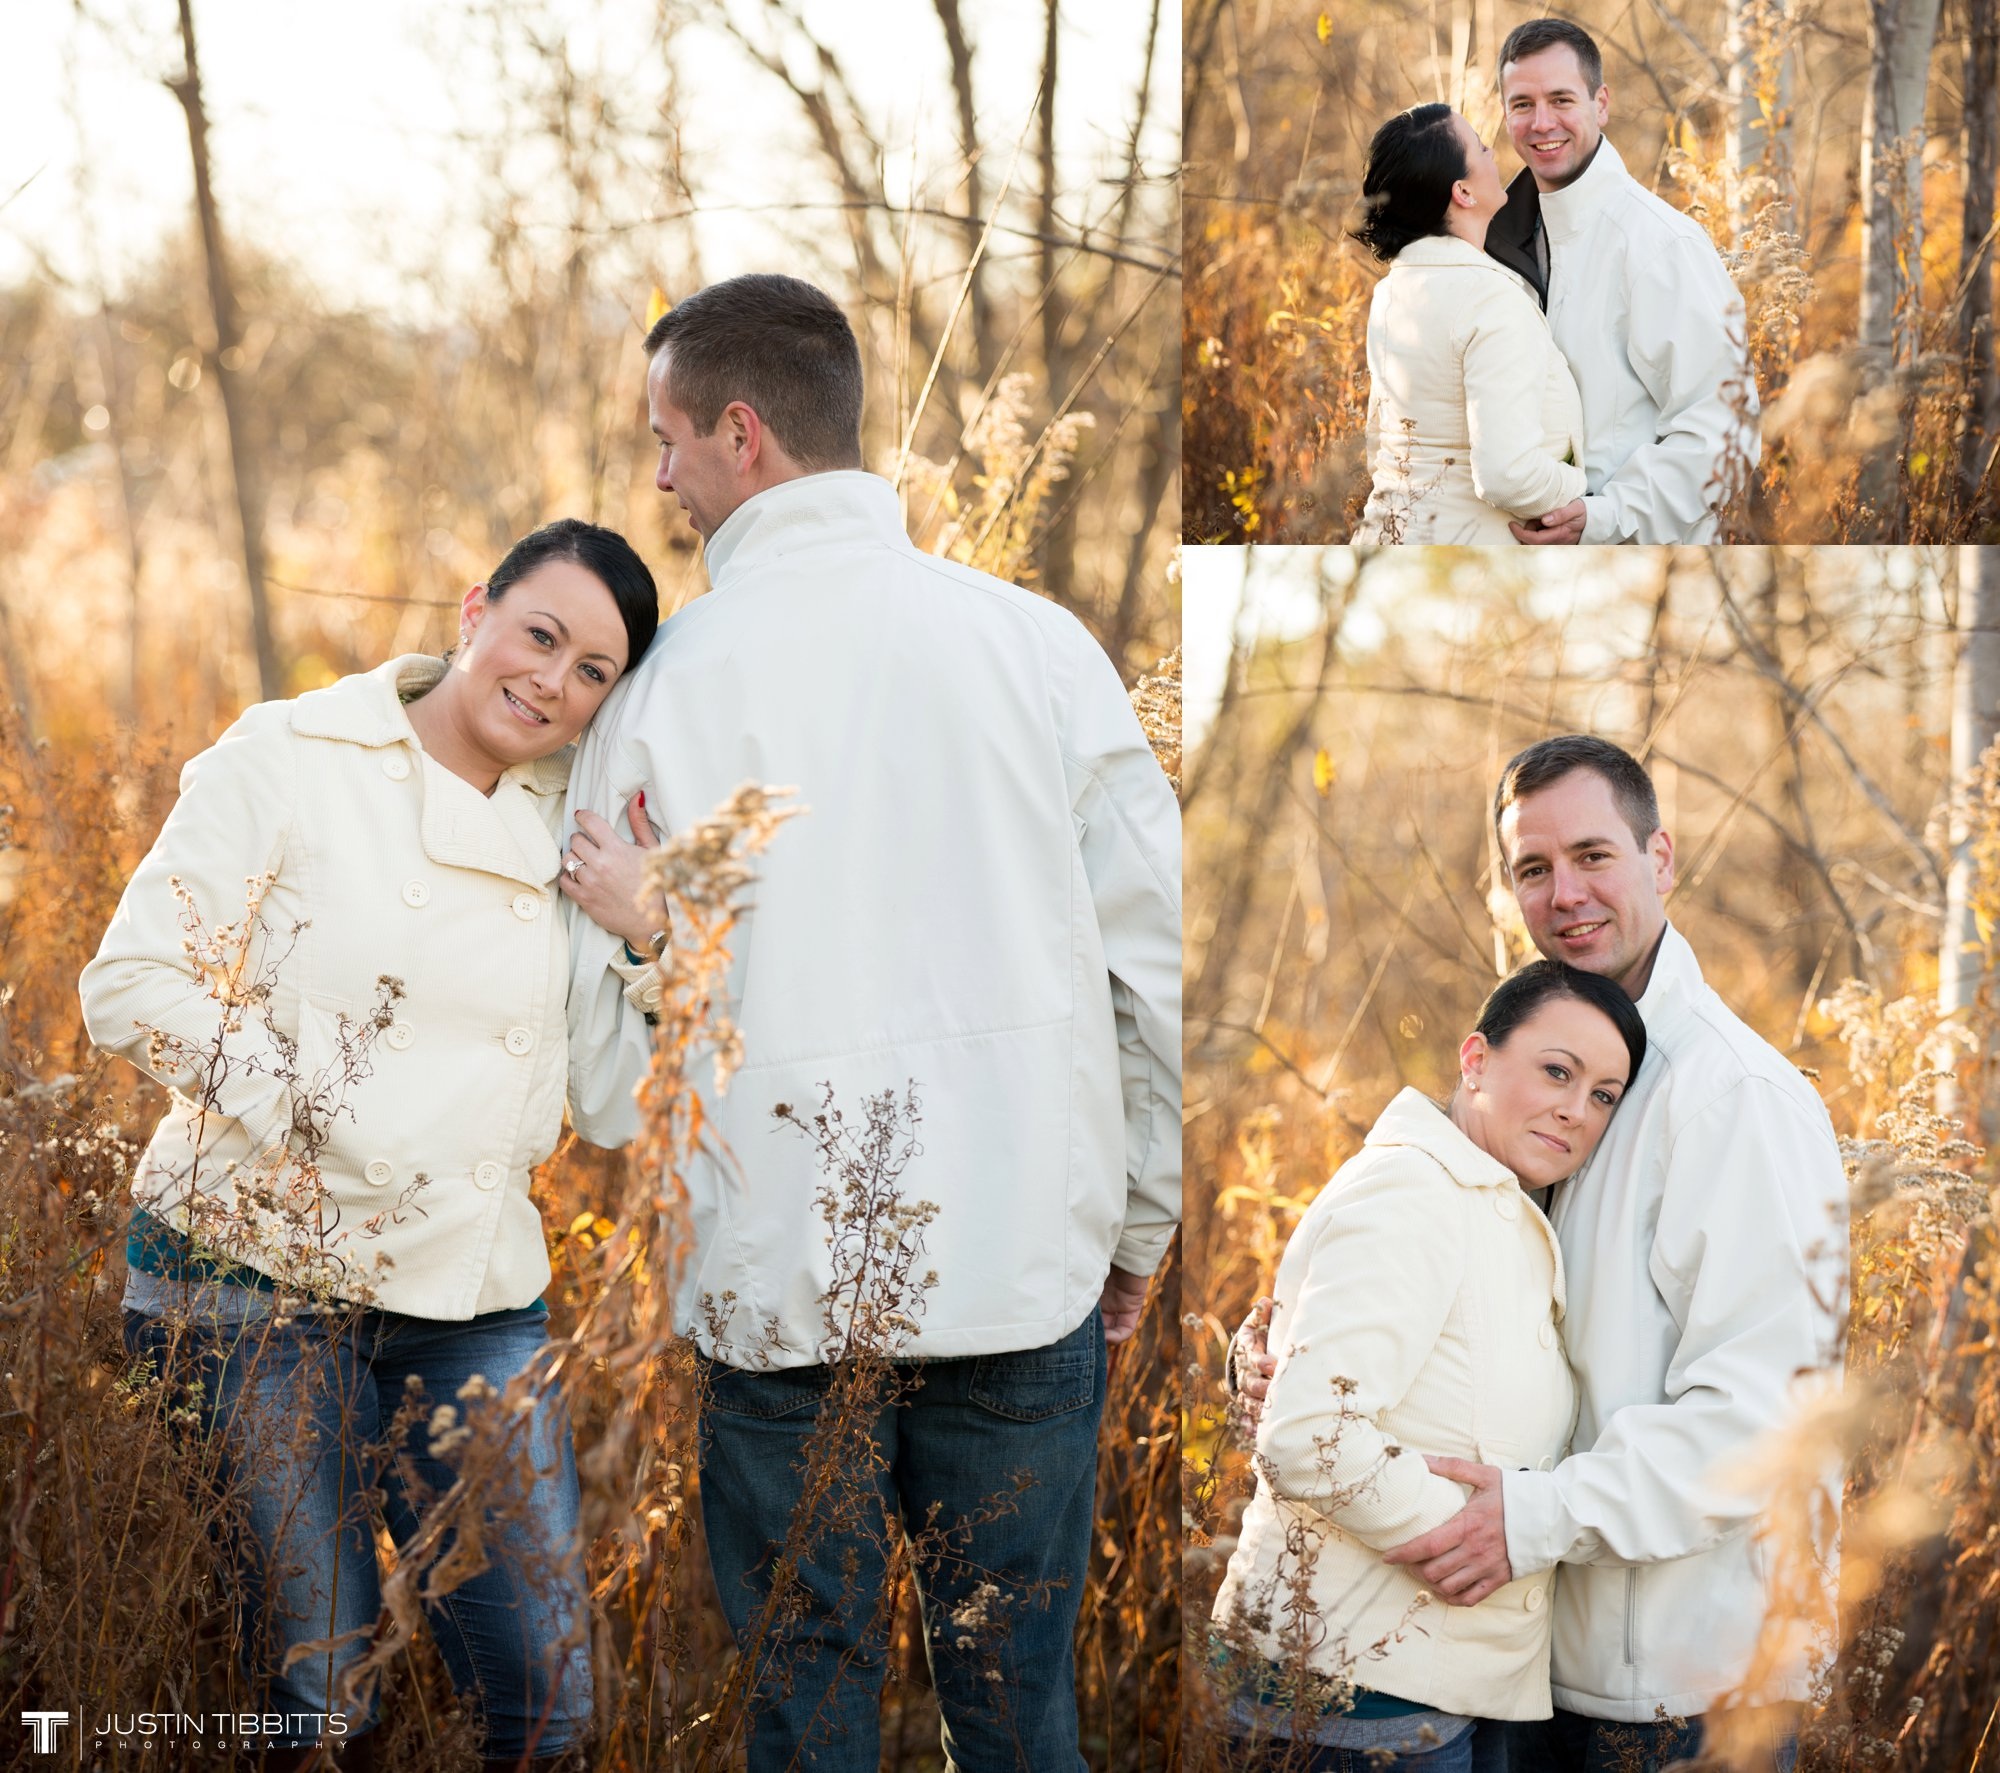 Justin Tibbitts Photography Kristie and Gregs Windham Mountain Resort Engagement Shoot-99